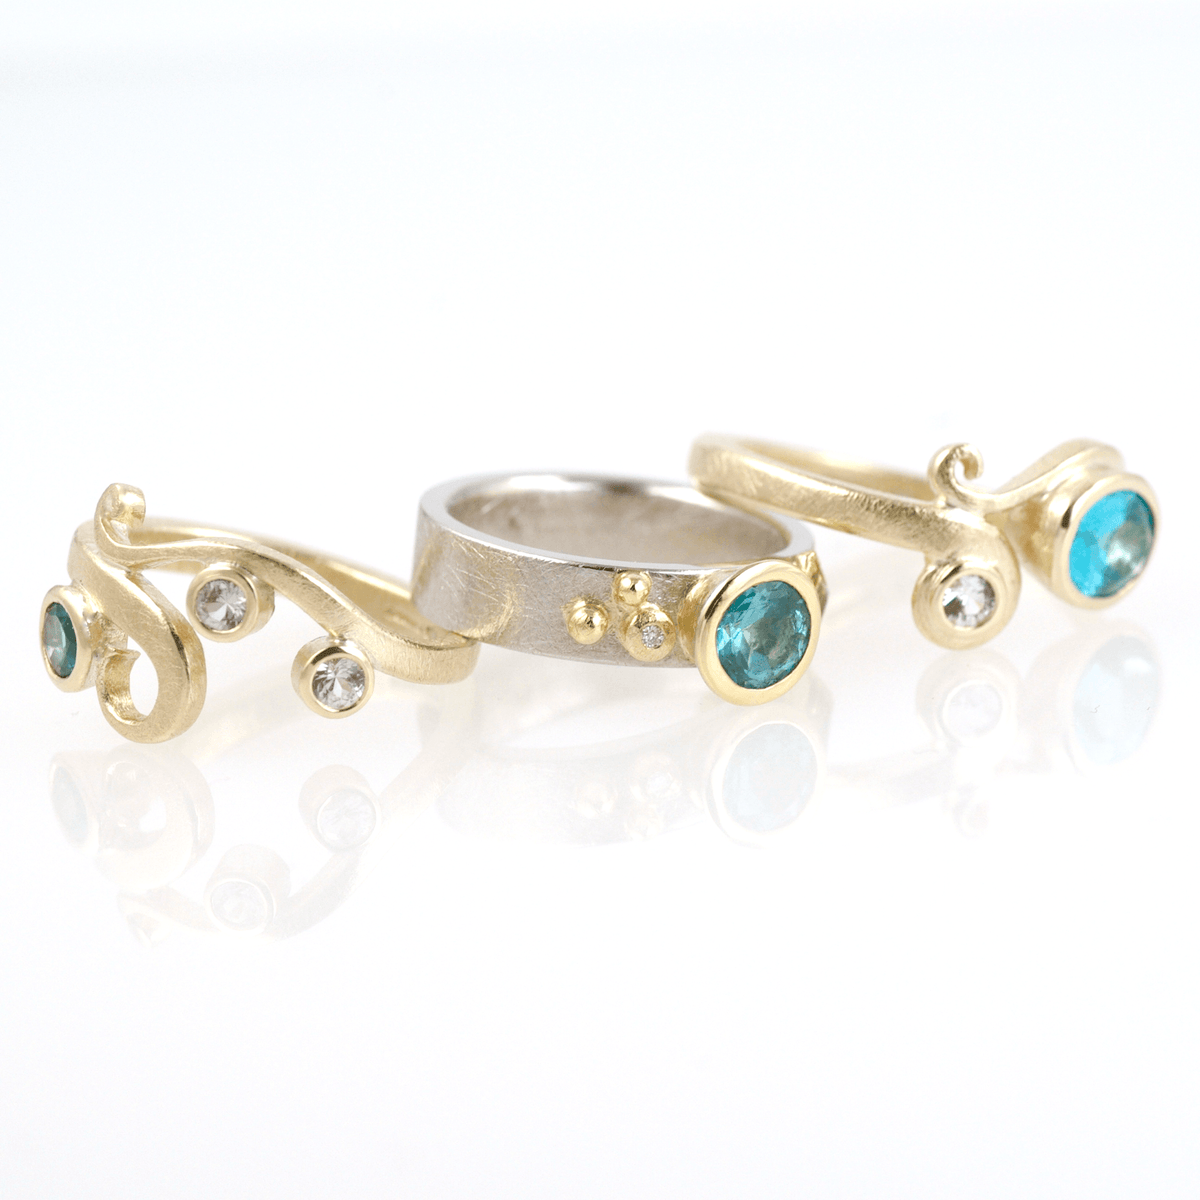 Classic Curl Ring: 9ct Yellow Gold, Blue Topaz, White Sapphires